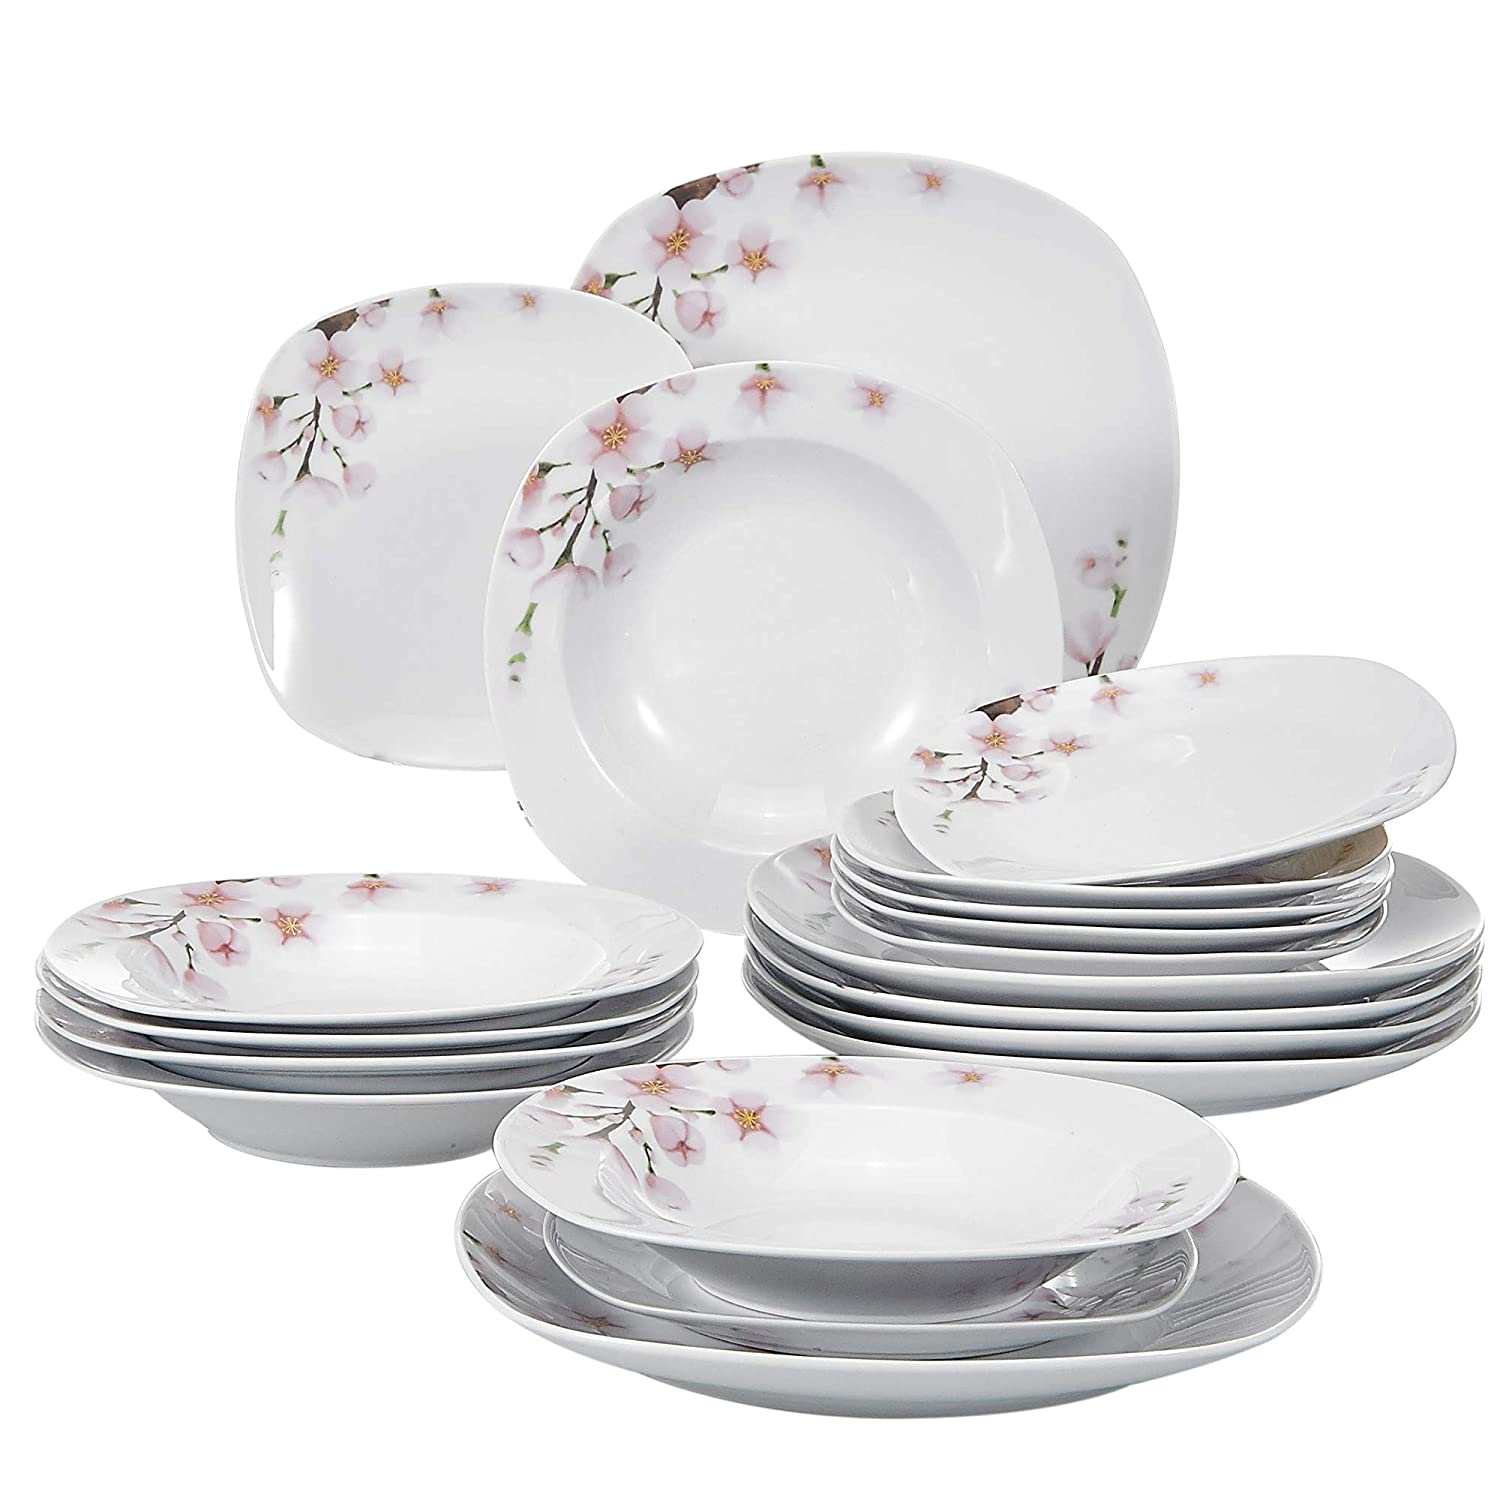 18-Piece Porcelain Stoneware Dinnerware Set Service for 6